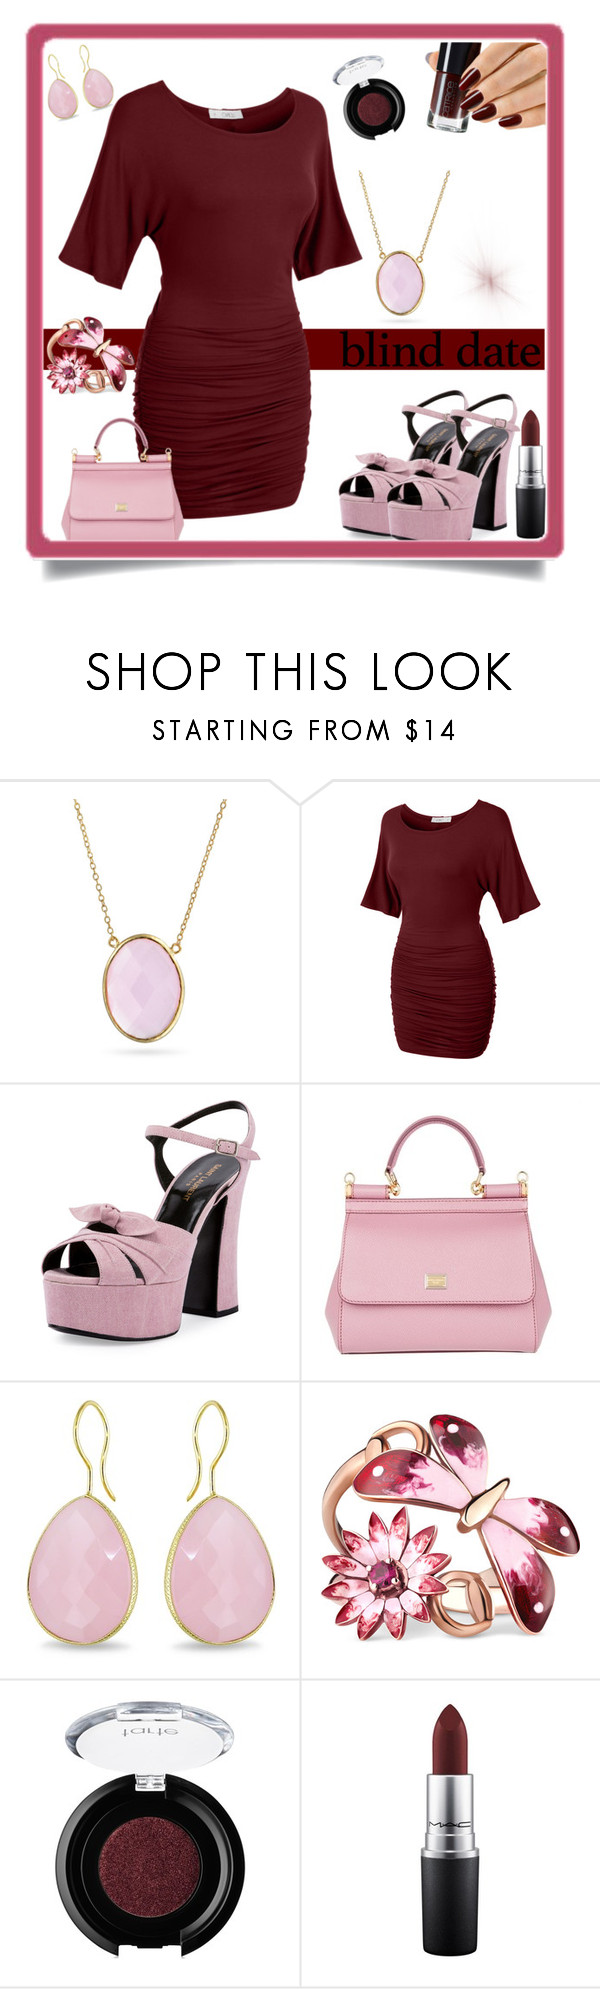 """""""blind date"""" by pam-doel ❤ liked on Polyvore featuring Bling Jewelry, LE3NO, Yves Saint Laurent, Dolce&Gabbana, Ice, Gucci, tarte and MAC Cosmetics"""